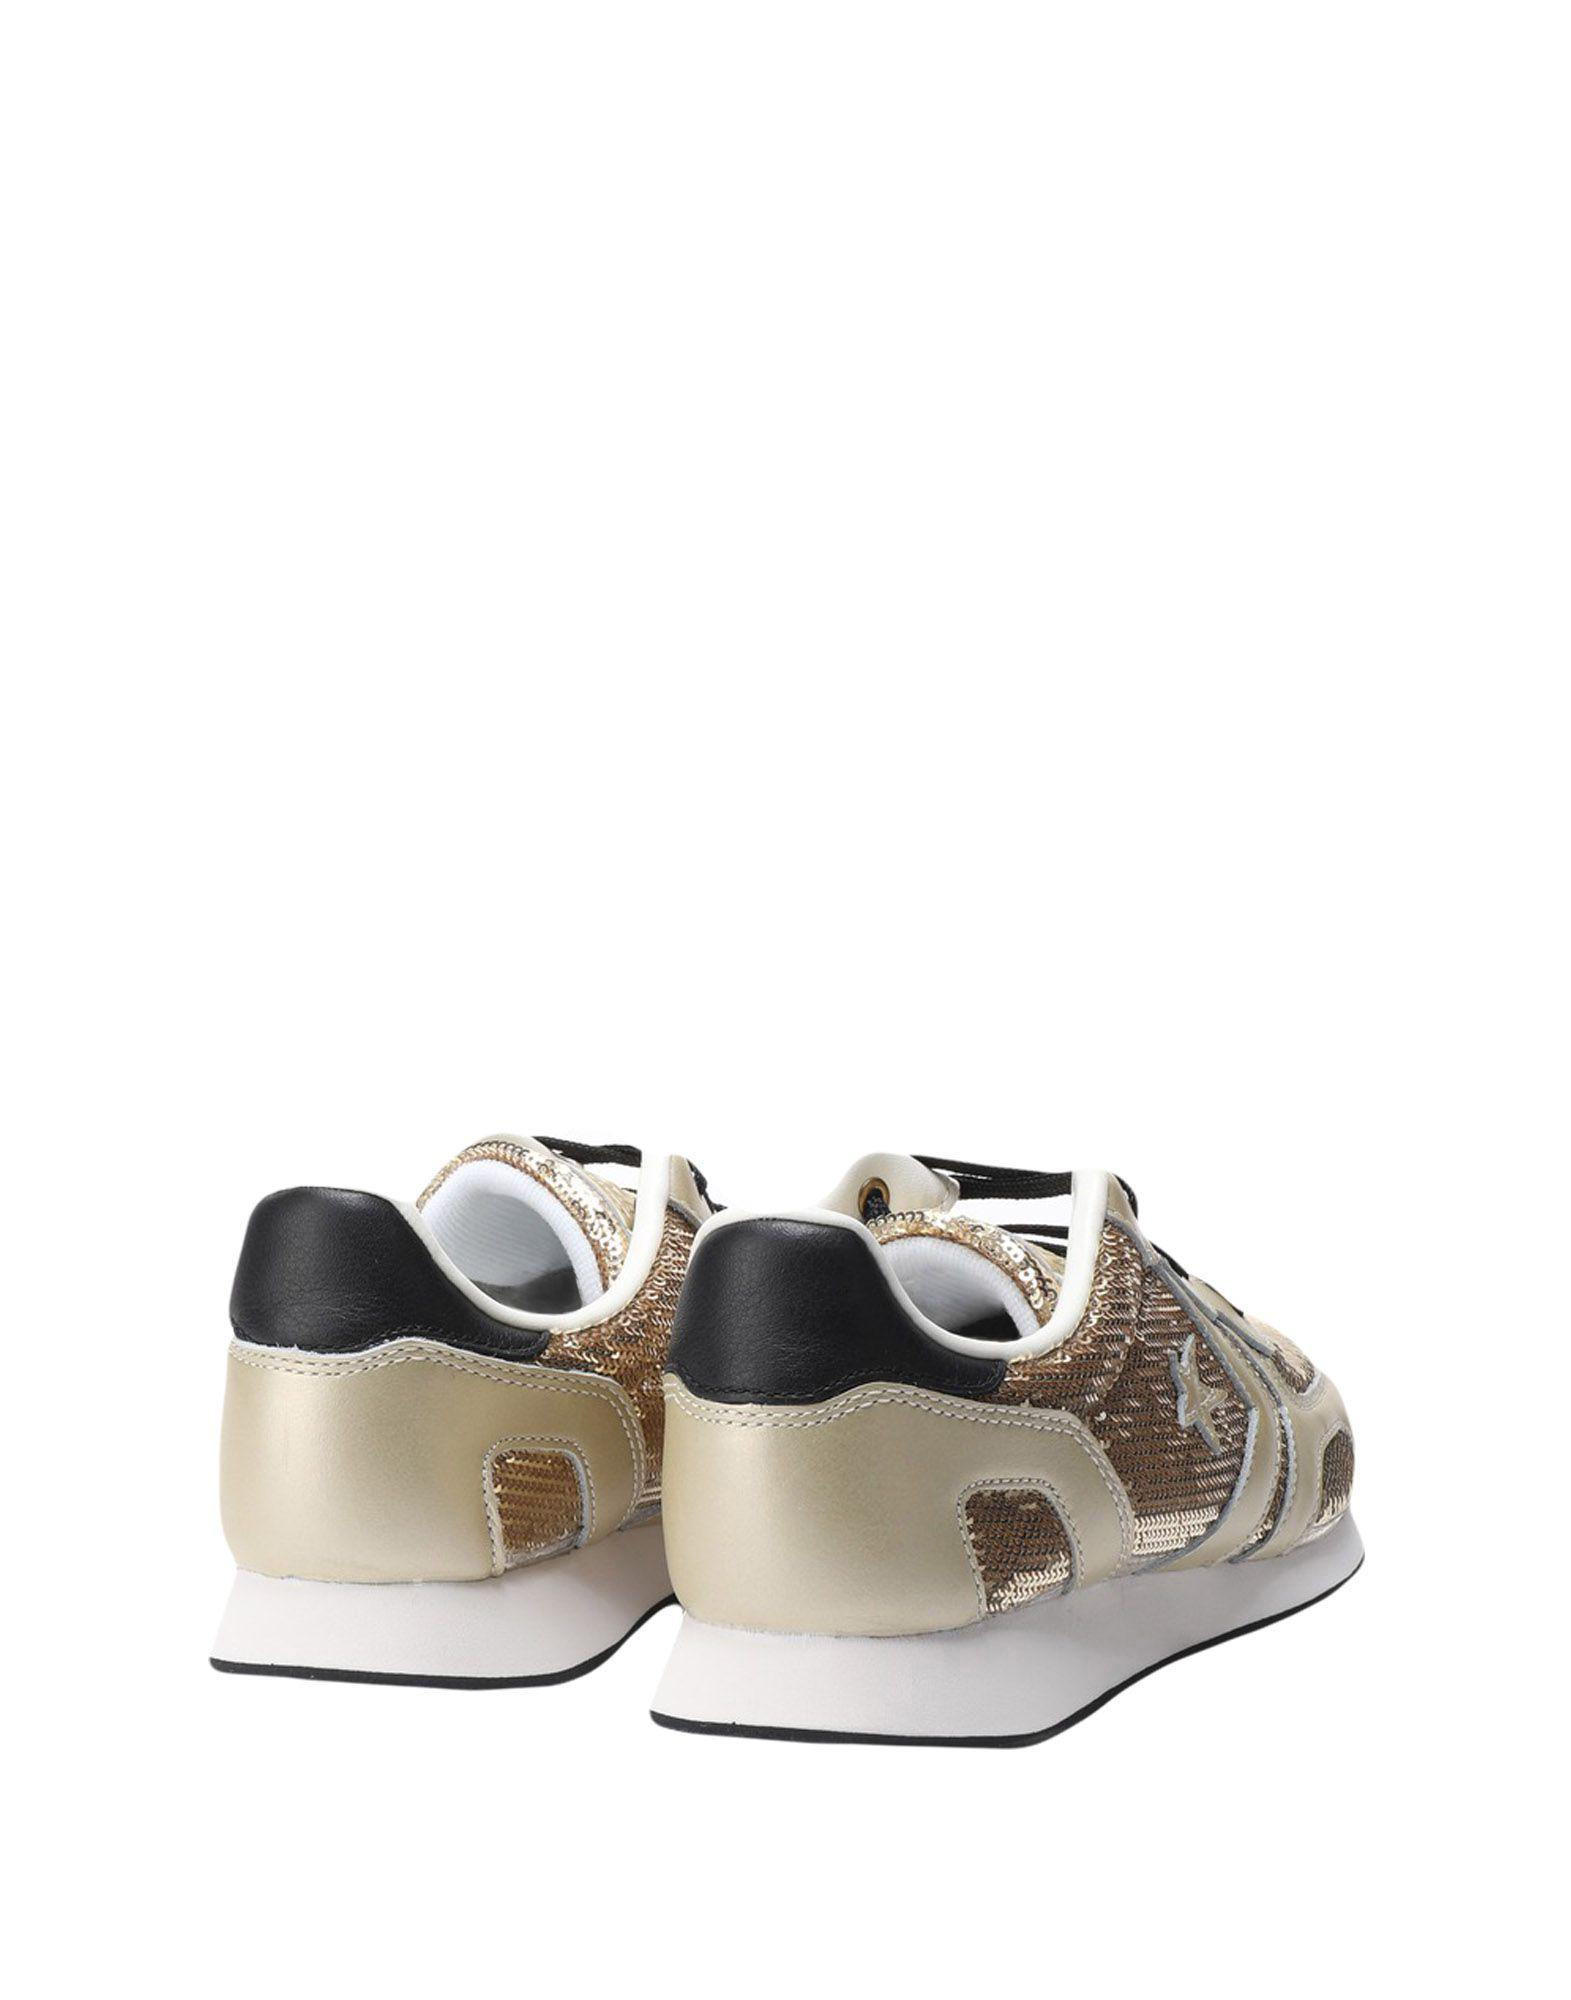 Converse Leather Low-tops & Sneakers in Gold (Metallic)